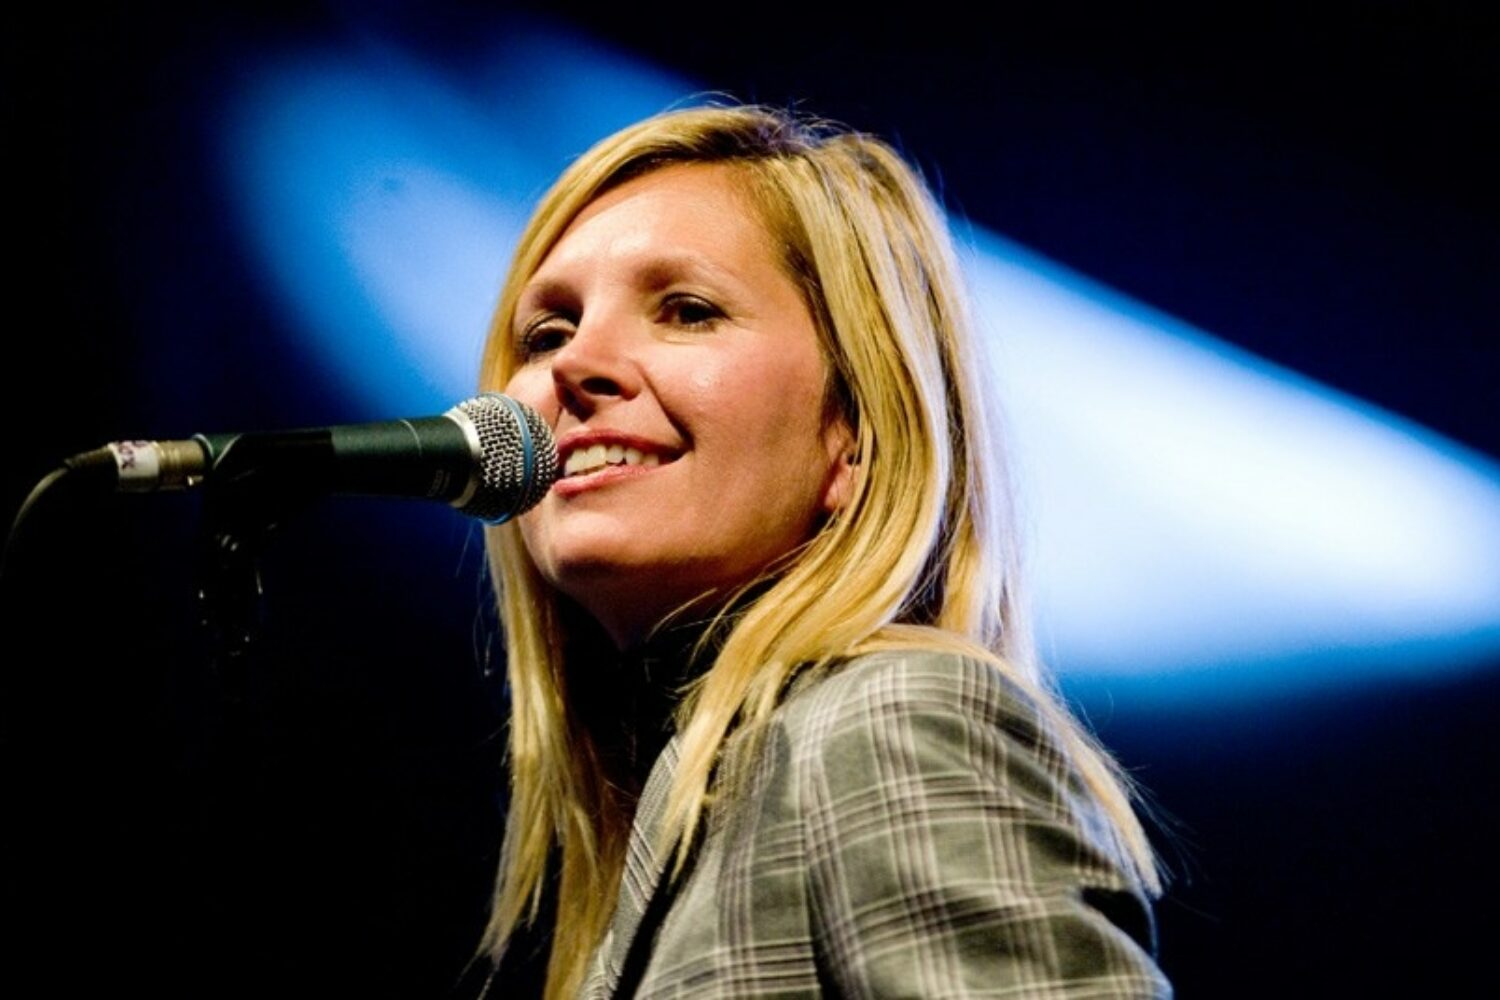 Saint Etienne's Sarah Cracknell announces solo album 'Red Kite,' shares 'On The Swings'